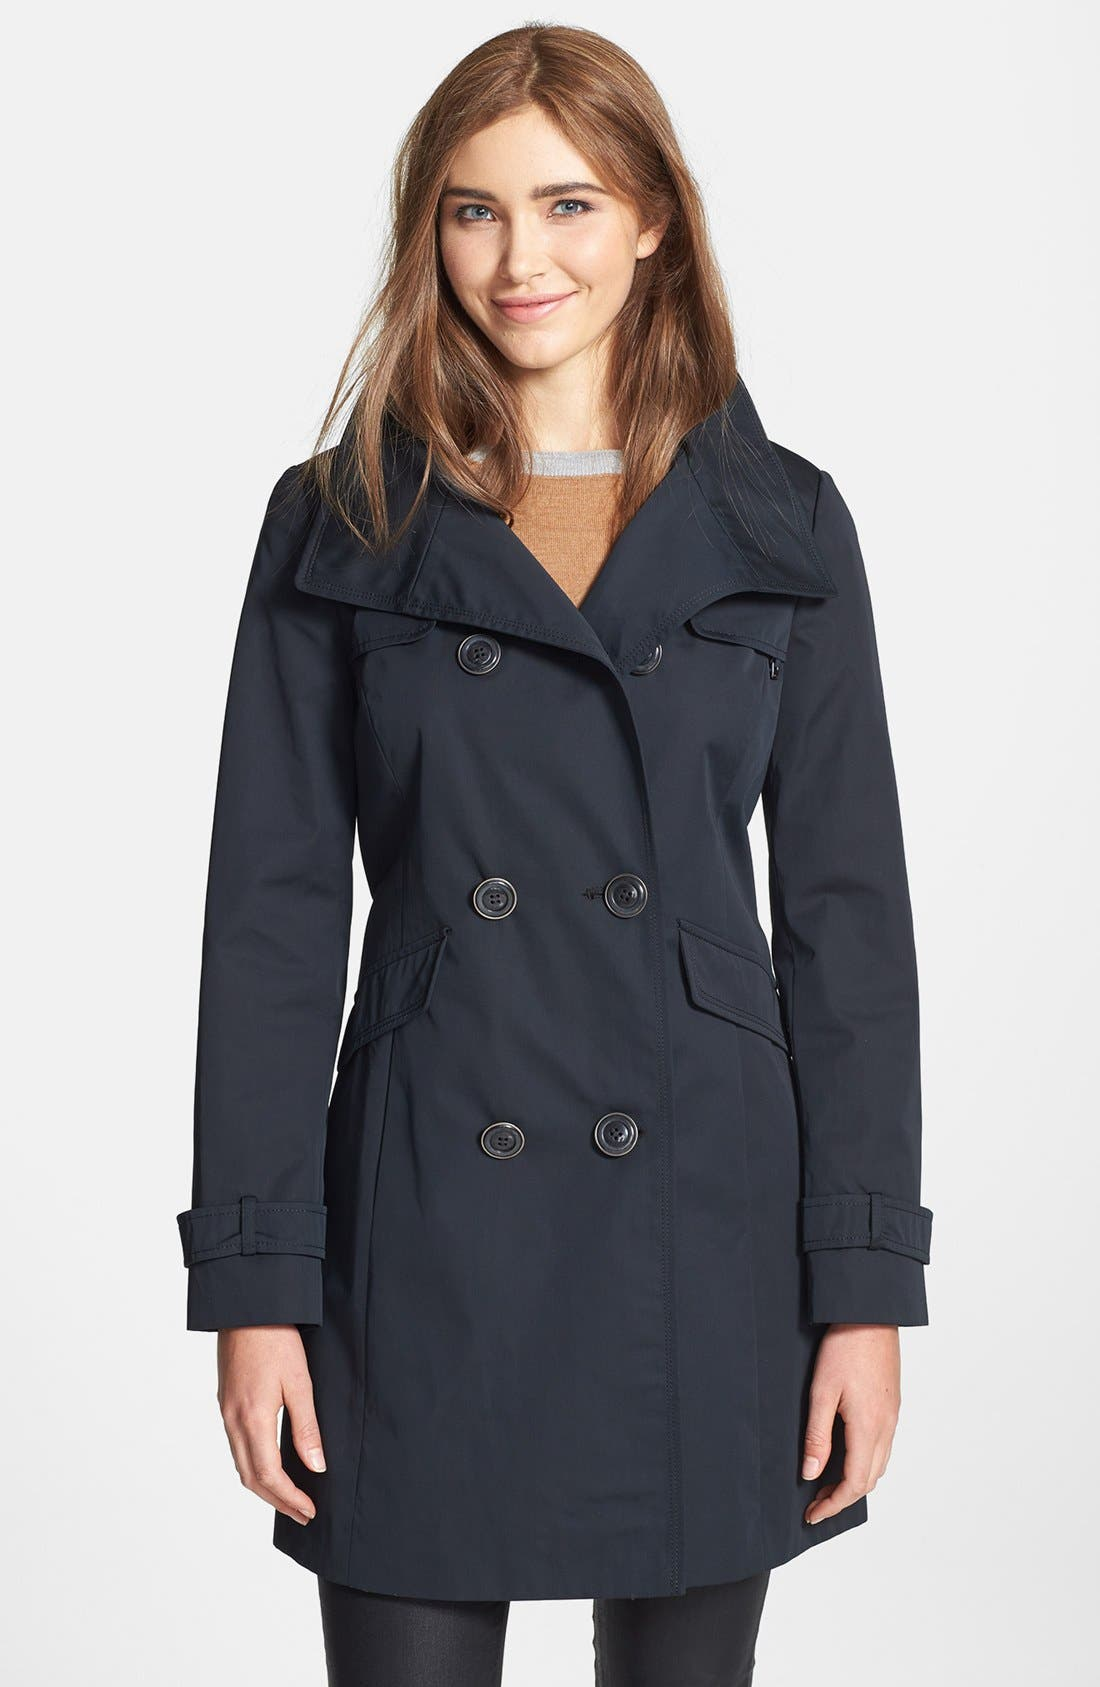 Alternate Image 1 Selected - Ellen Tracy Double Breasted Raincoat (Online Only)